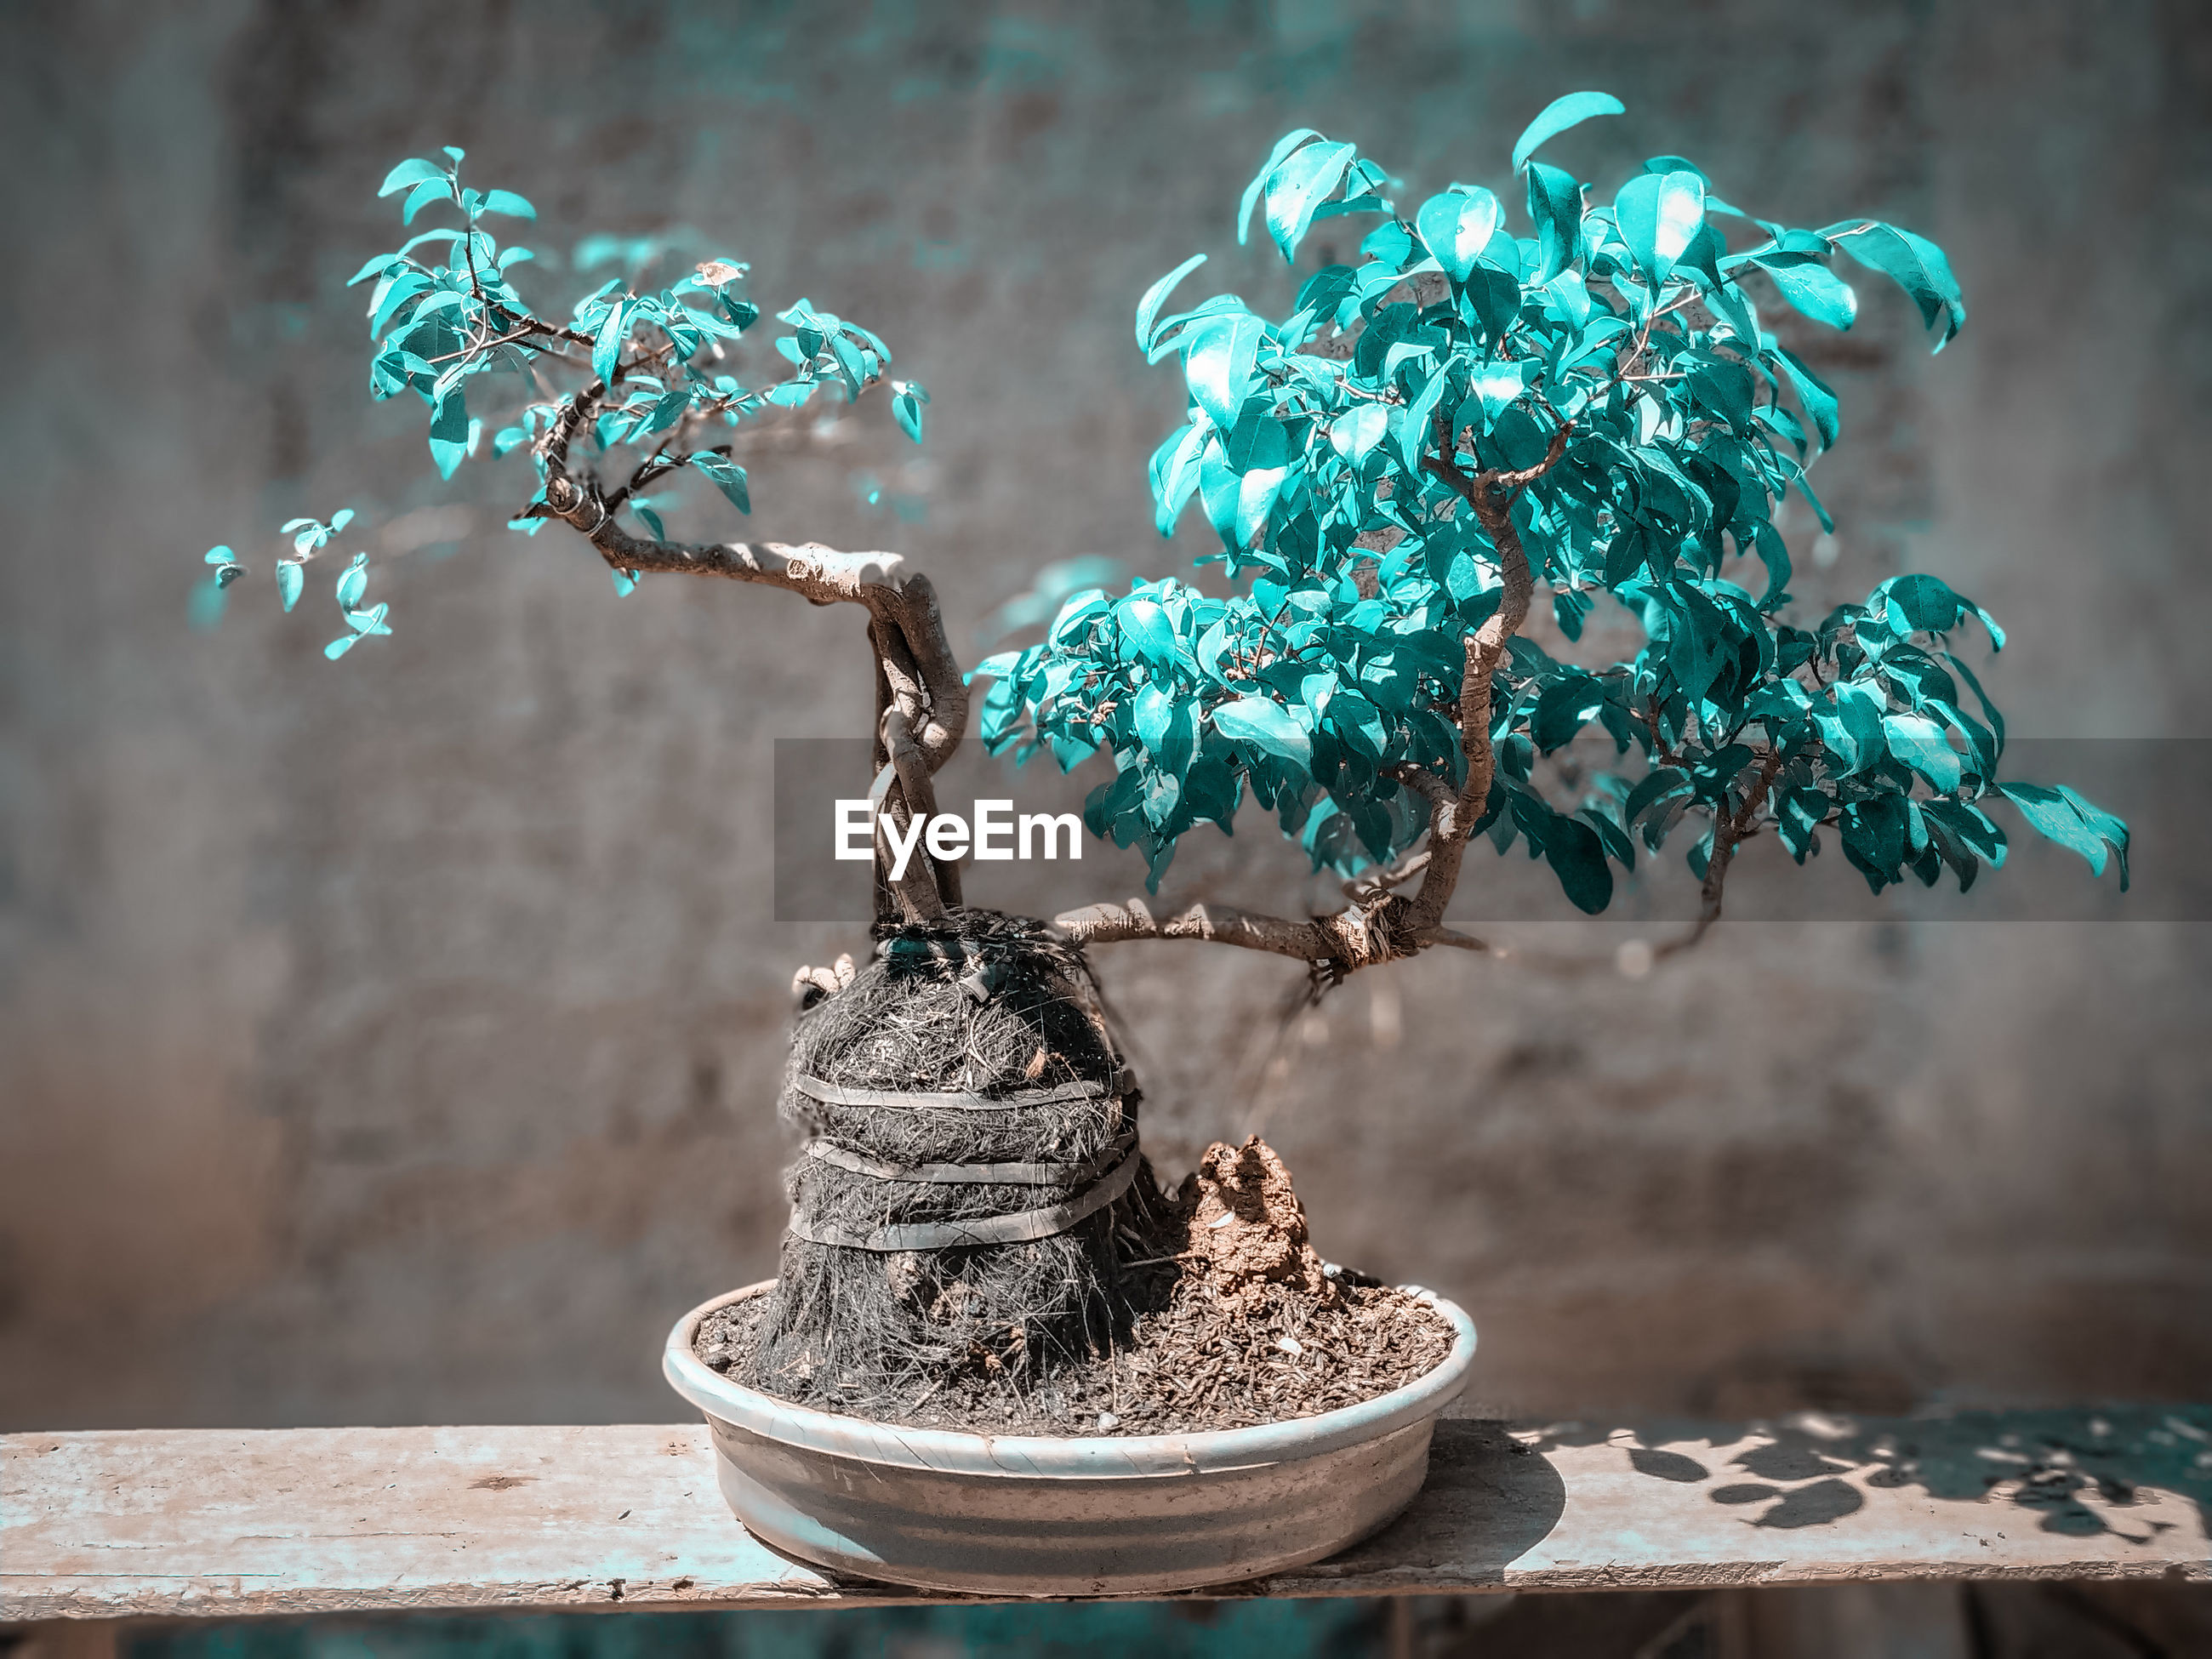 CLOSE-UP OF POTTED PLANT ON TABLE AGAINST TREES